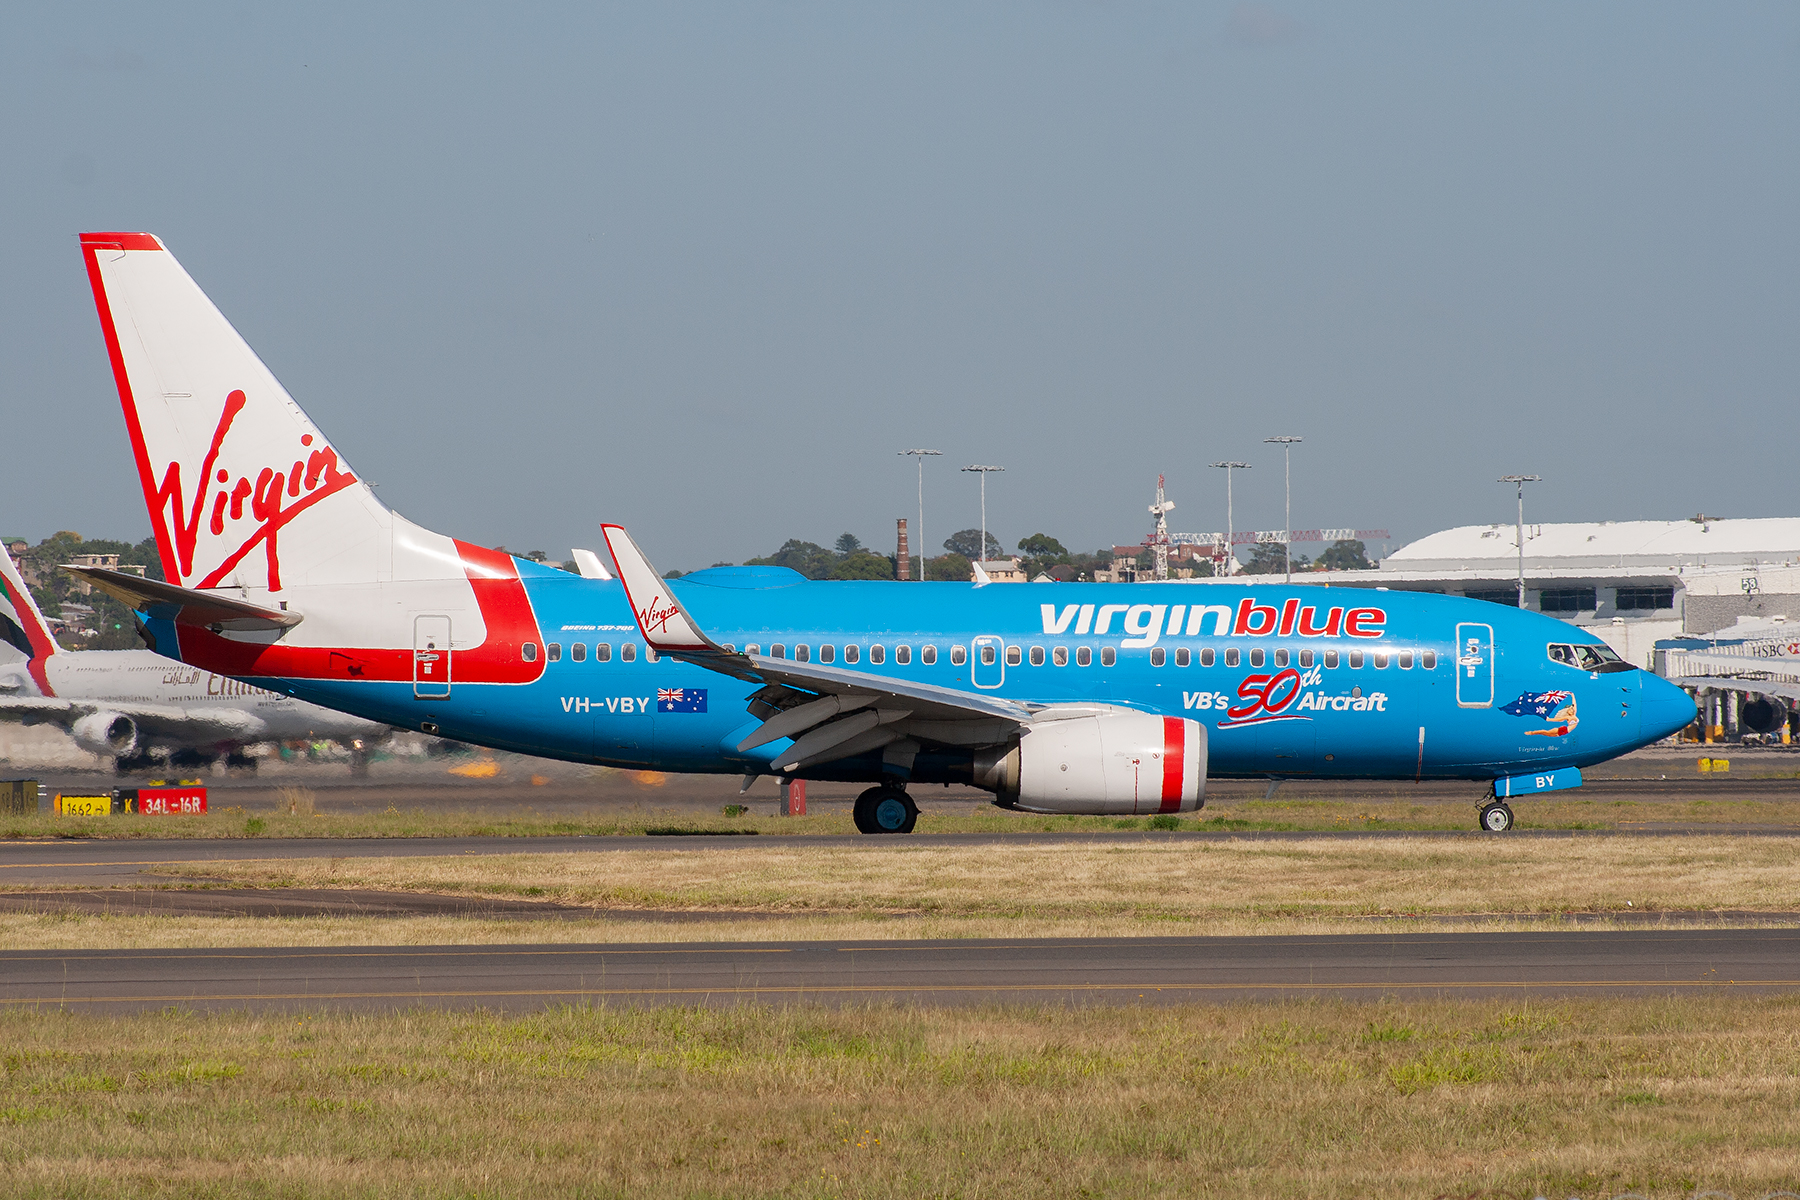 Virgin Blue Airlines Boeing 737-700 VH-VBY at Kingsford Smith